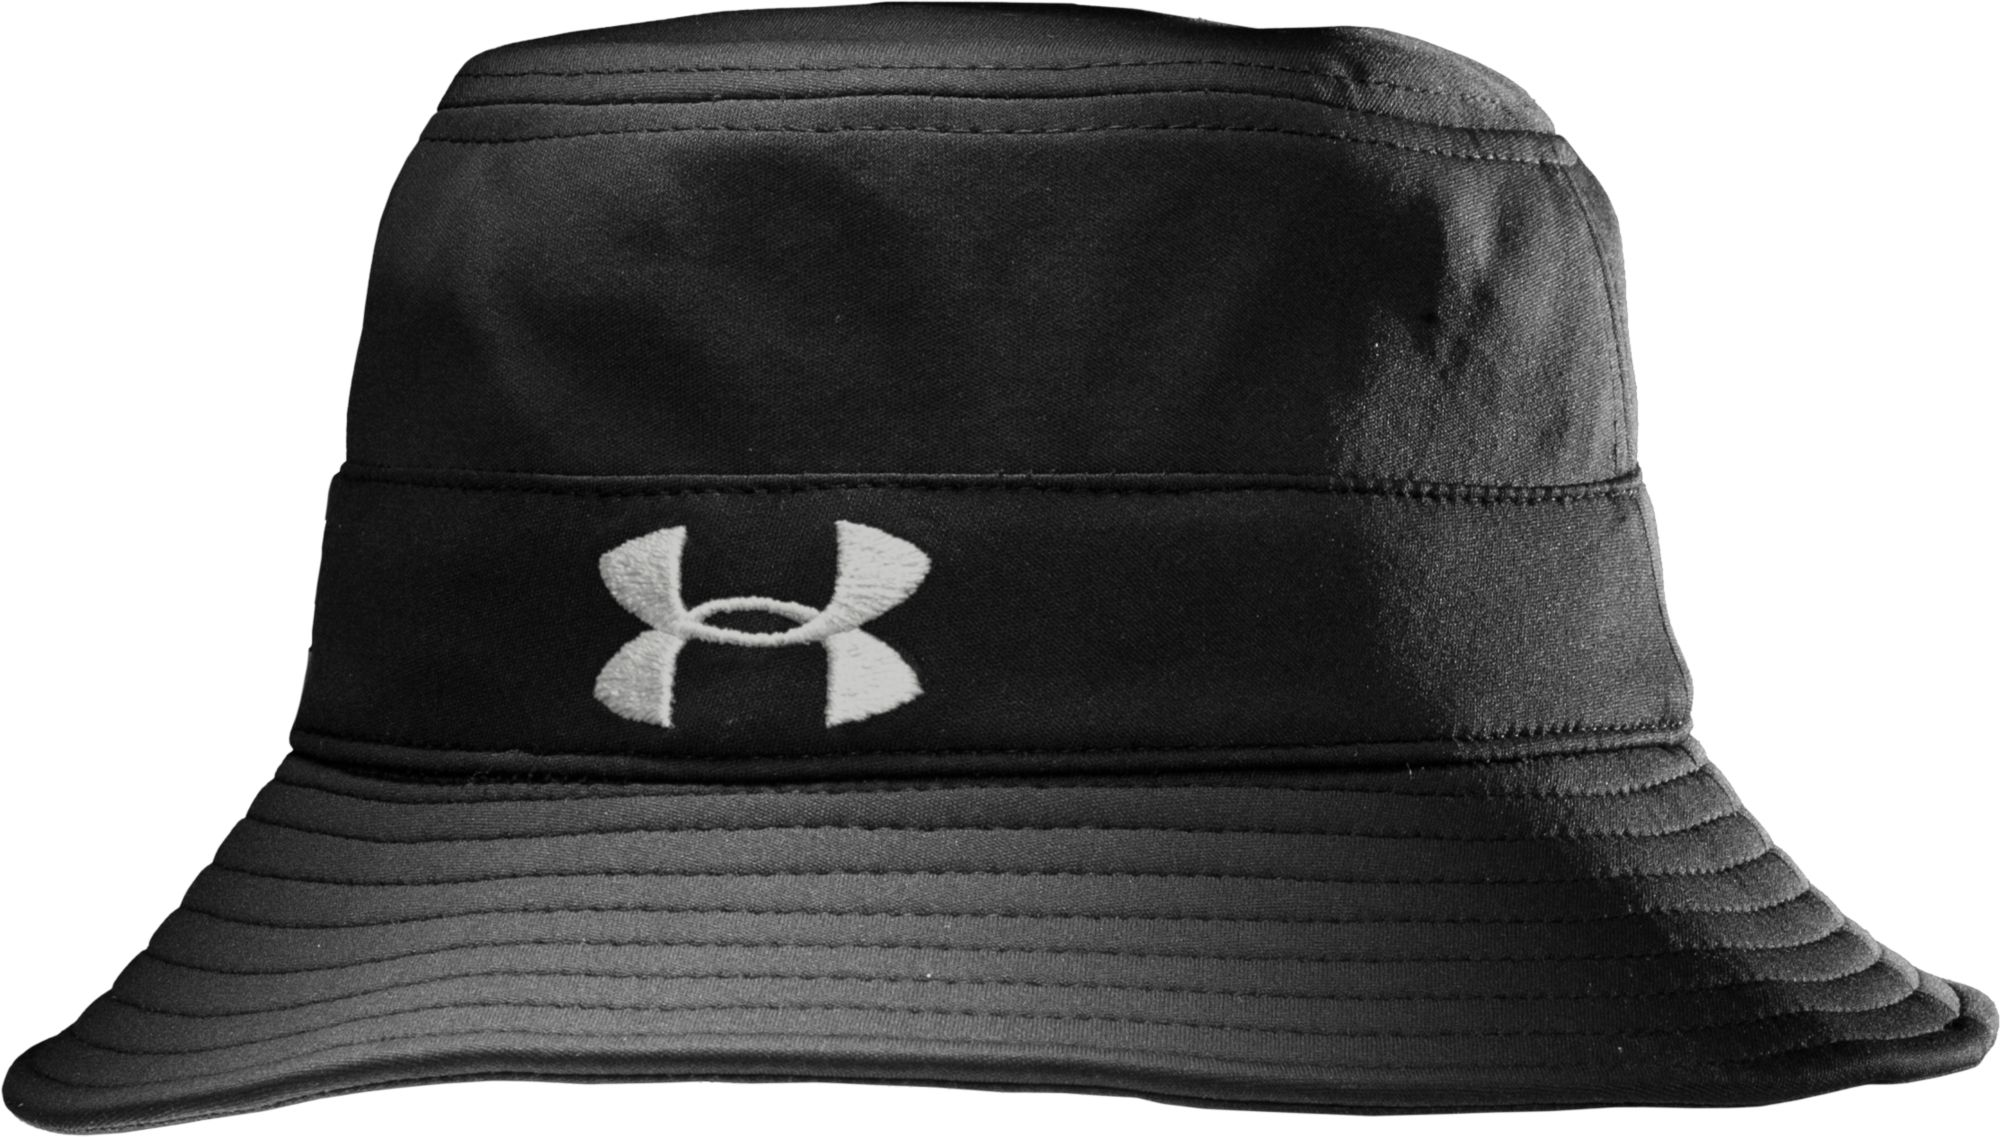 93473ba6782d8 ... discount code for under armour coldblack bucket hat 8a576 e05da